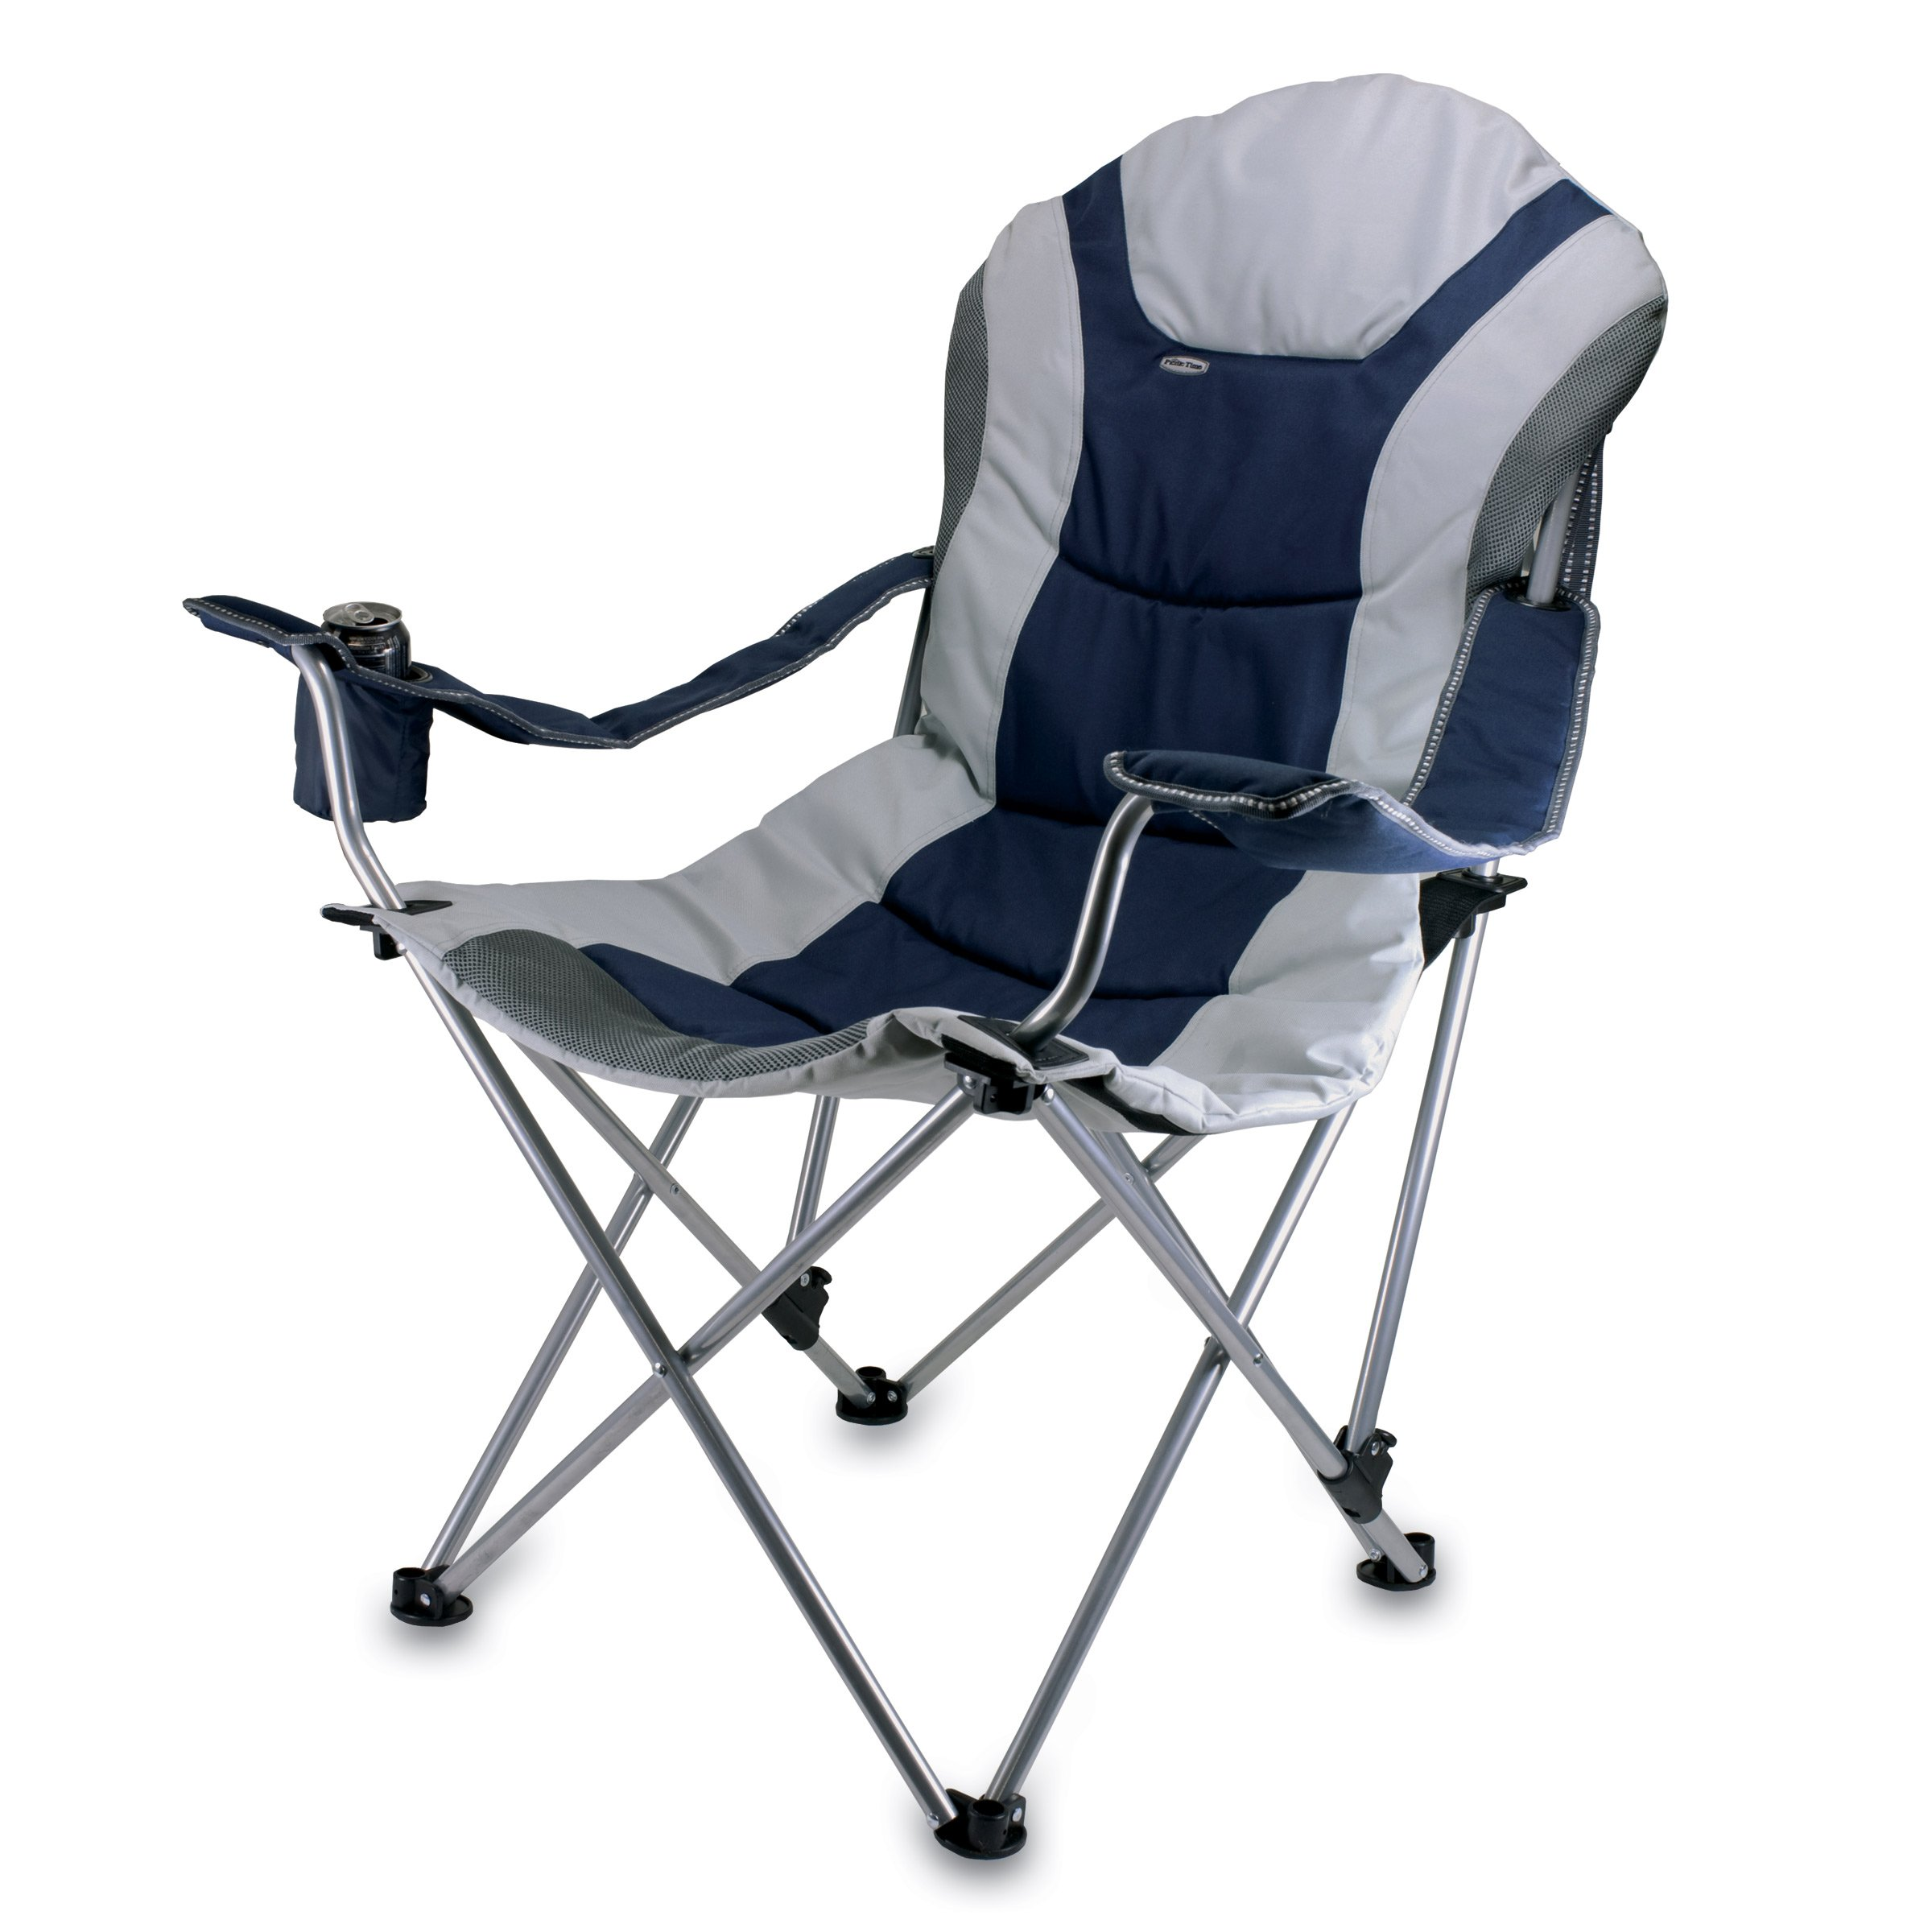 Pleasing Details About Oniva A Picnic Time Brand Portable Reclining Camp Chair Navy Creativecarmelina Interior Chair Design Creativecarmelinacom